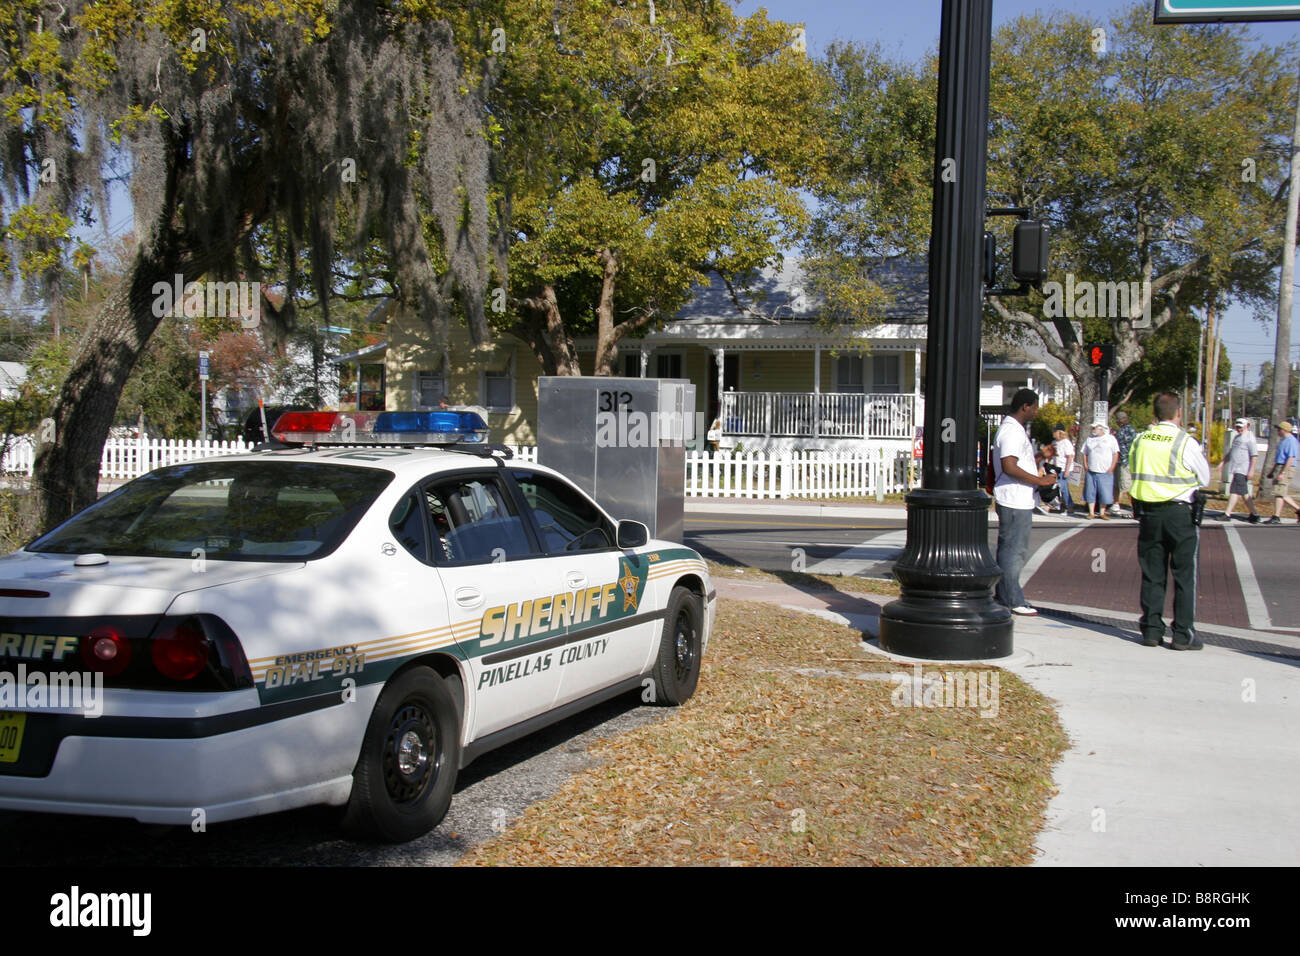 Deputy Sheriff Stock Photos & Deputy Sheriff Stock Images - Alamy